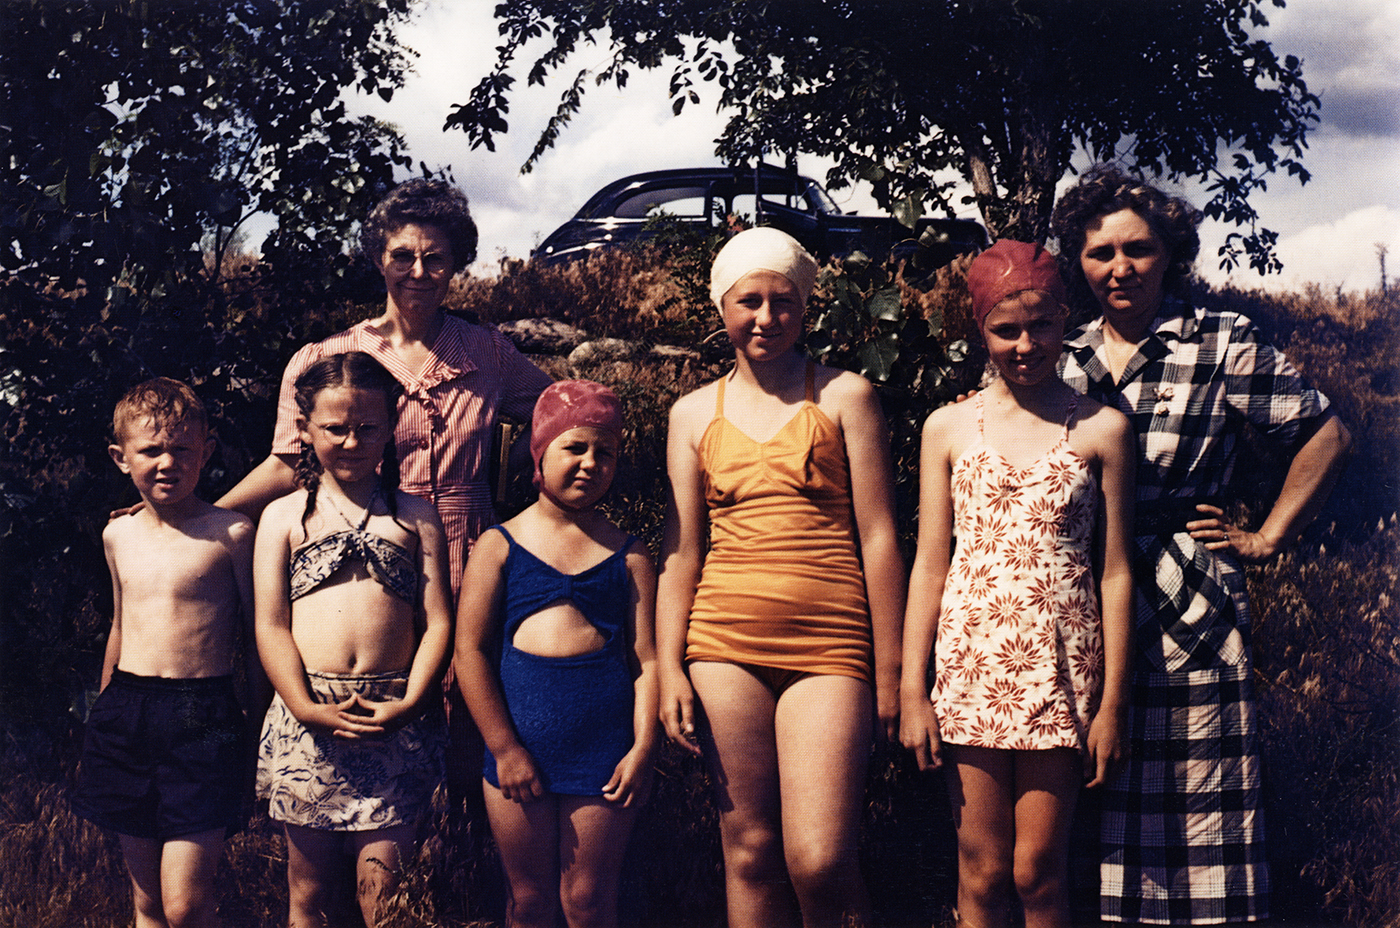 Guy Stricherz  Americans in Kodachrome 1945-1965   Swimmers, Alexandria, South Dakota,  1948  Photographer: Floyd M. Jones  16 x 20 inches  Dye Transfer Print